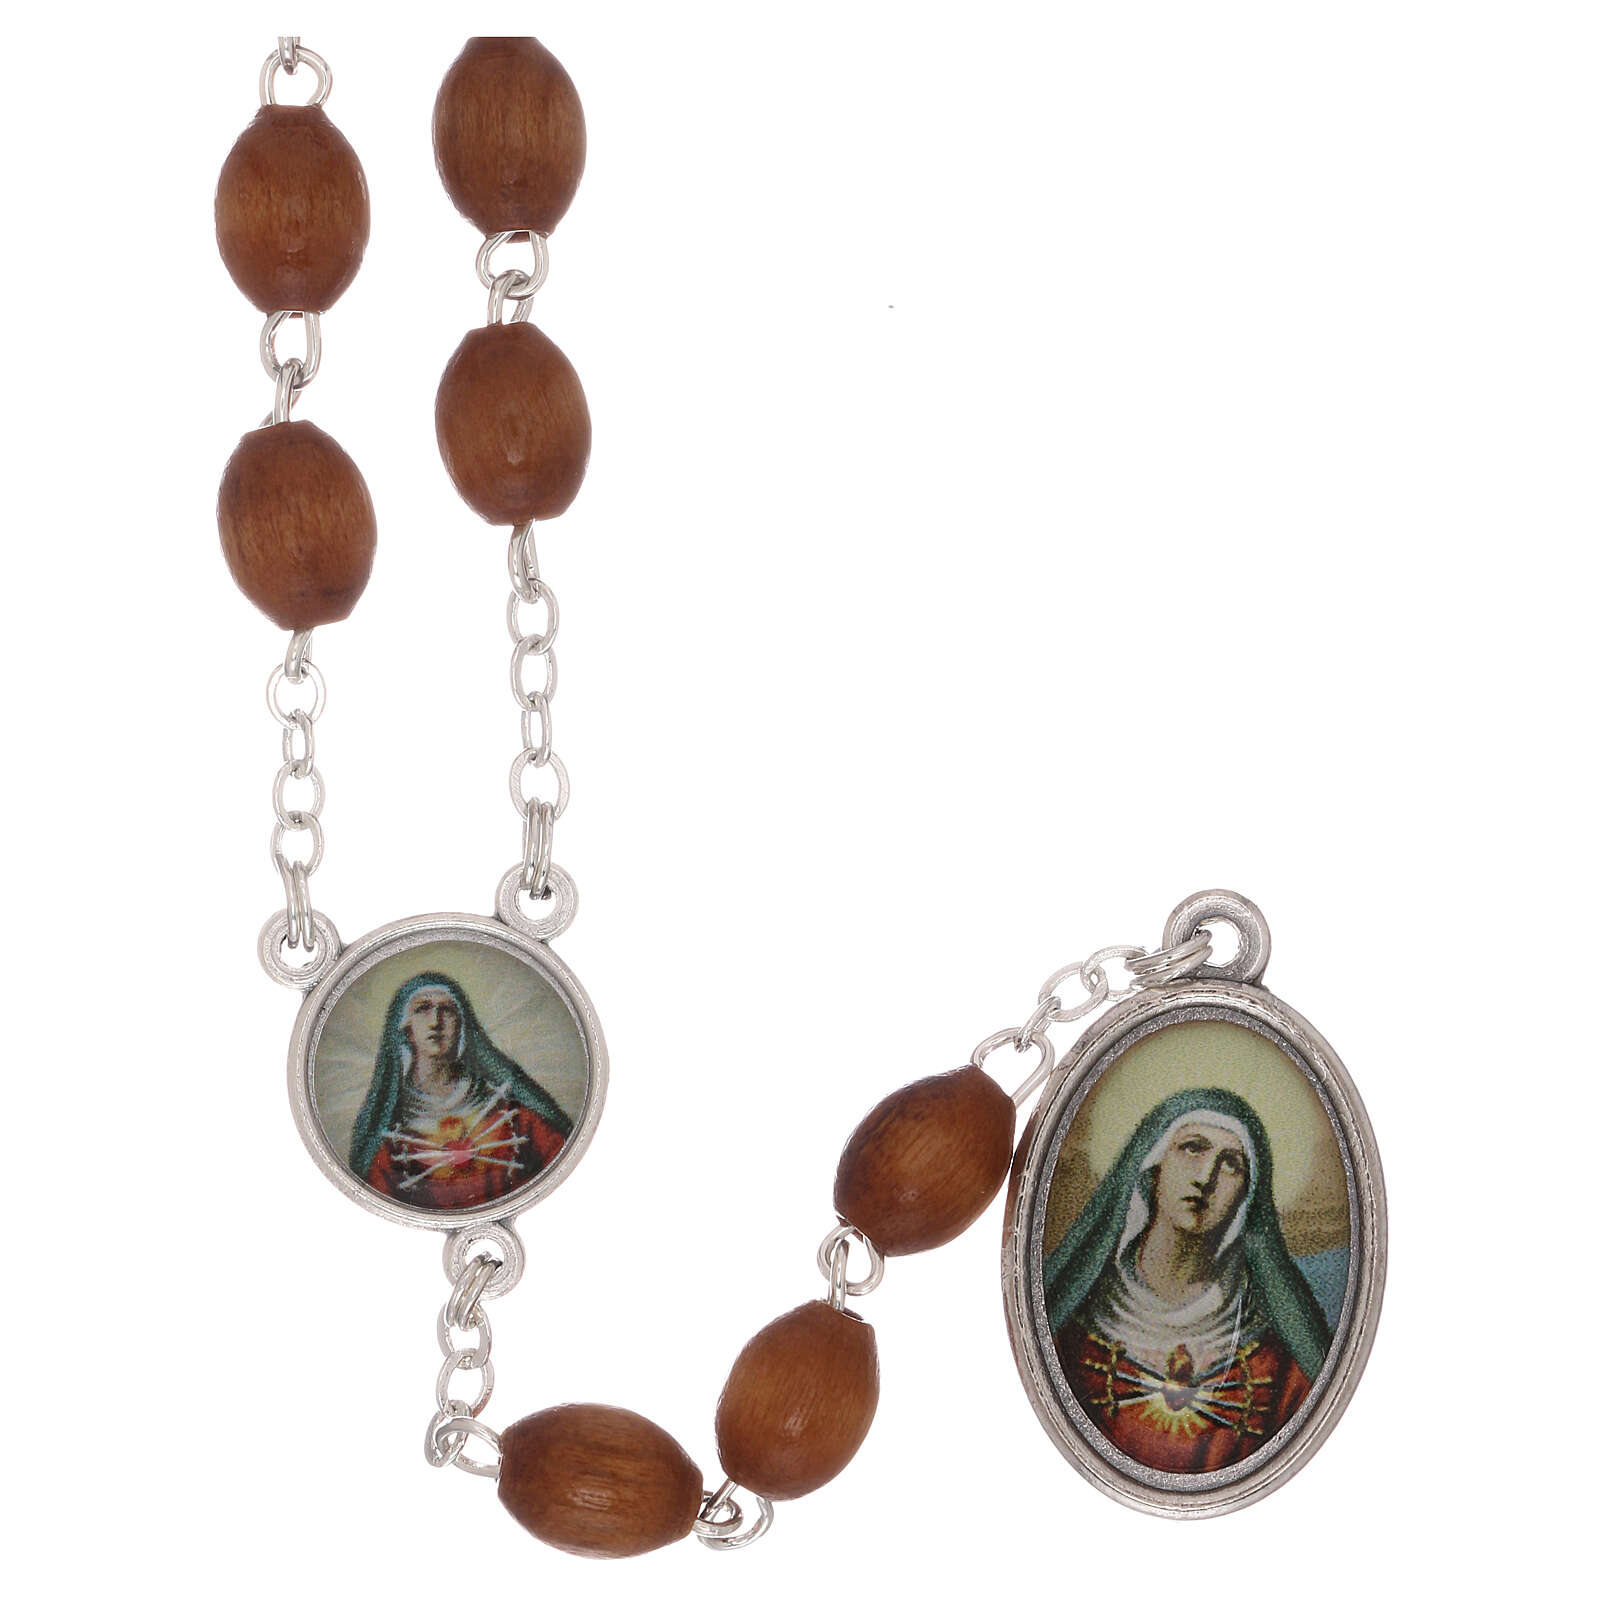 Our Lady of Sorrows rosary metal chain 4